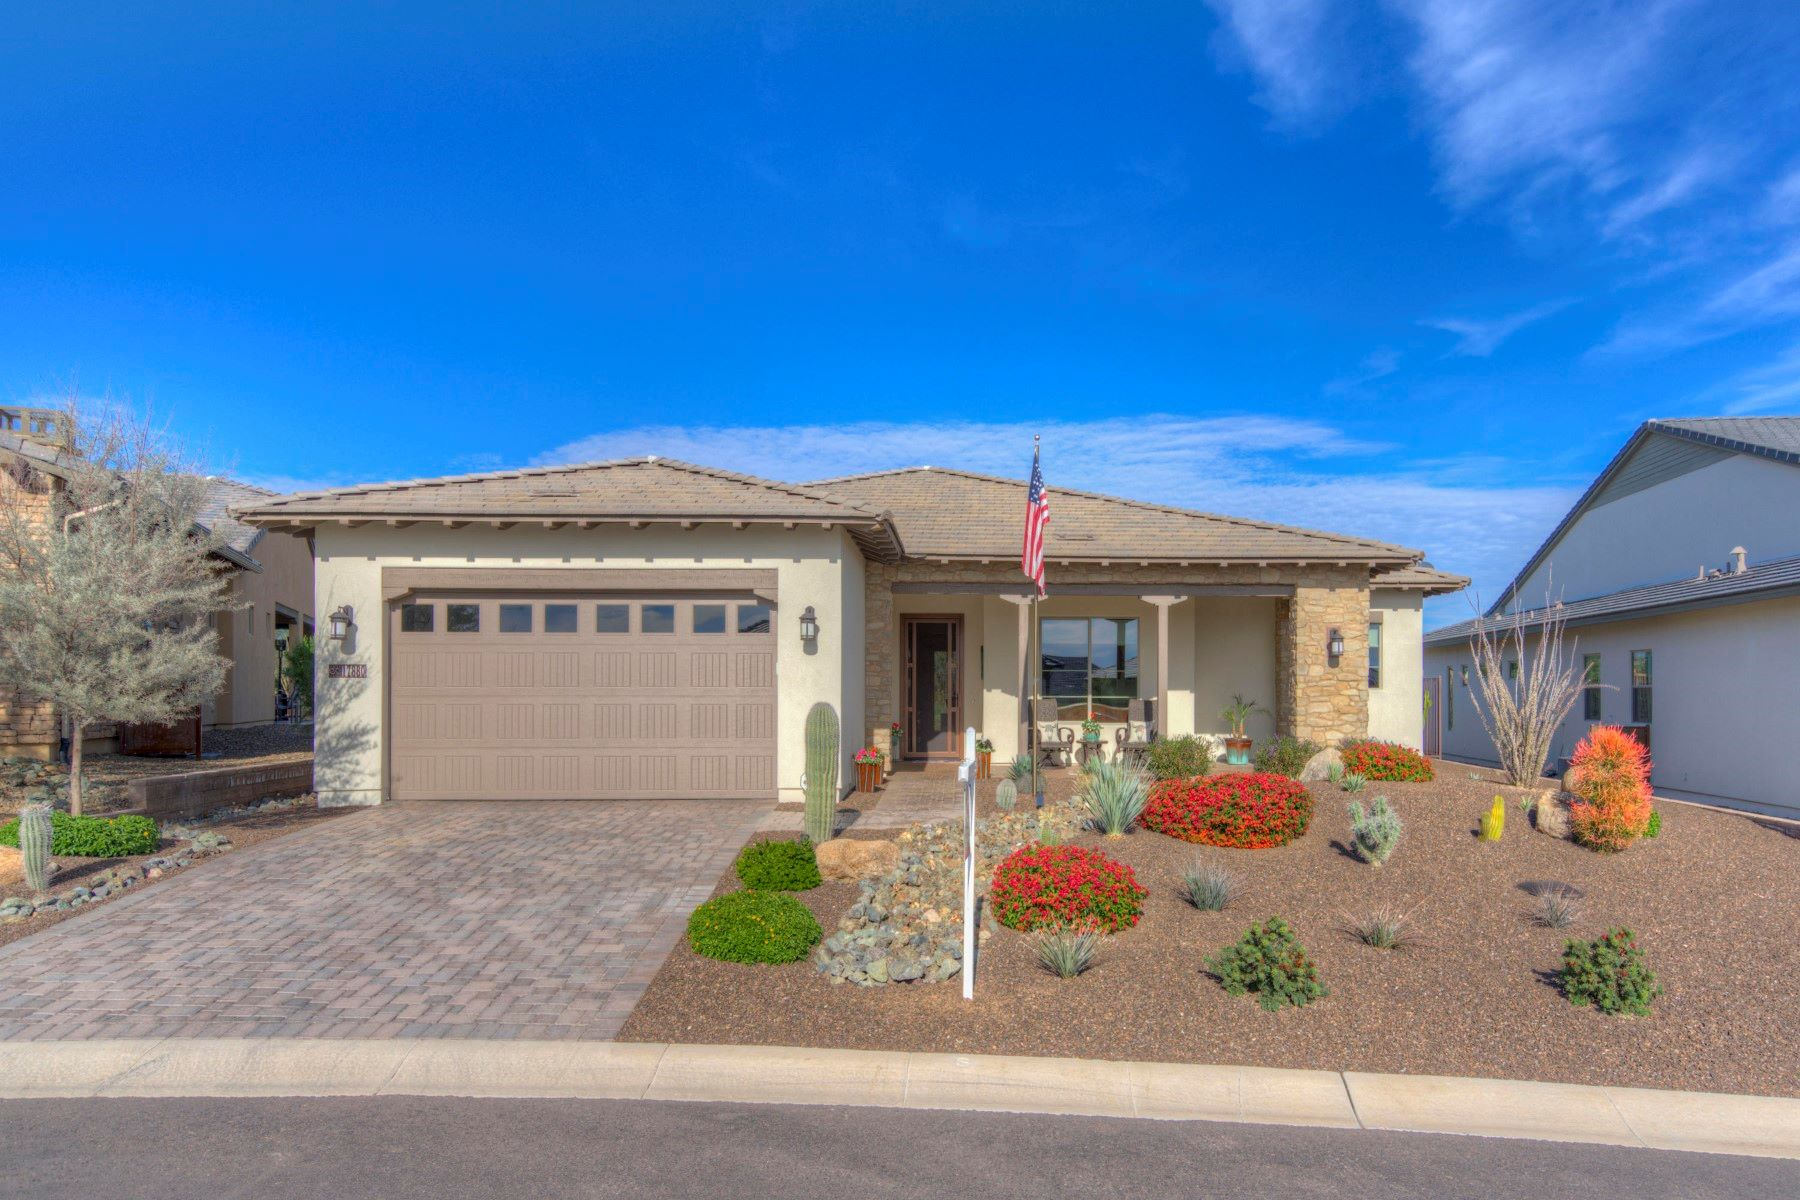 Single Family Homes for Active at Trilogy at Verde River 17880 E VISTA DESIERTO Rio Verde, Arizona 85263 United States